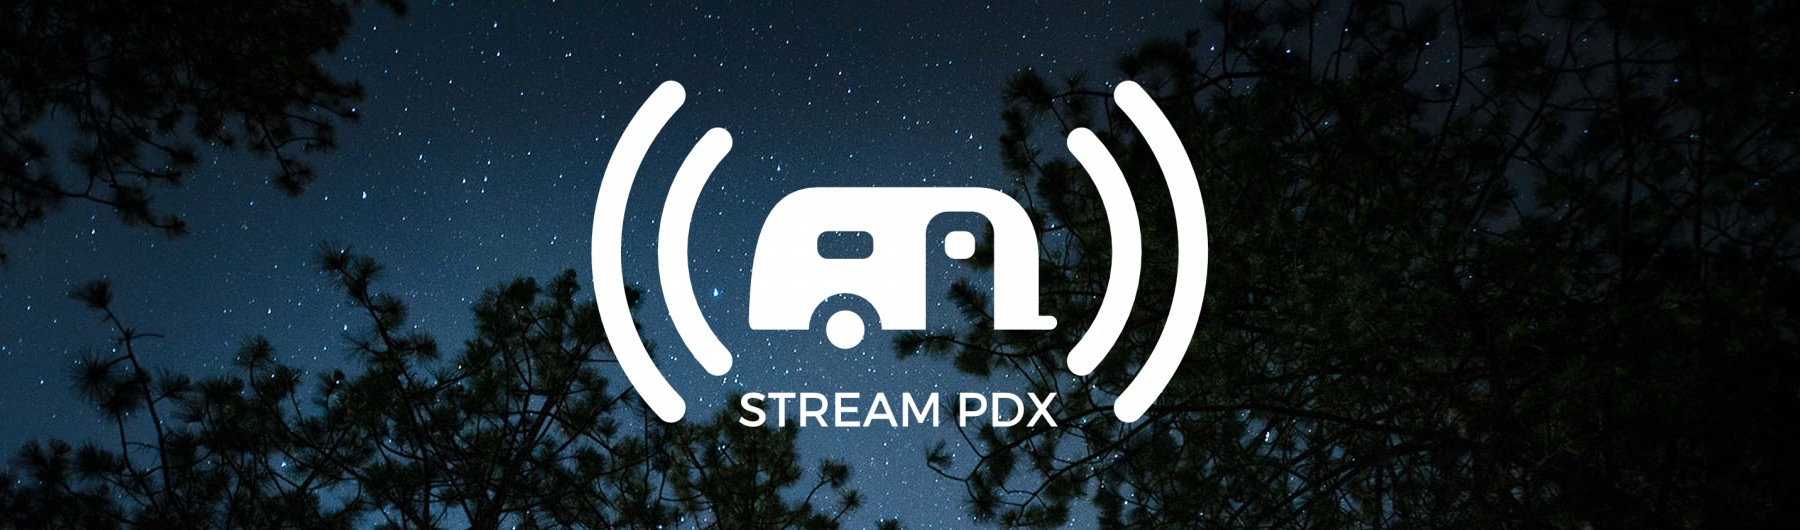 Monthly Stream PDX Meetup - October 6 at 6:00 PM